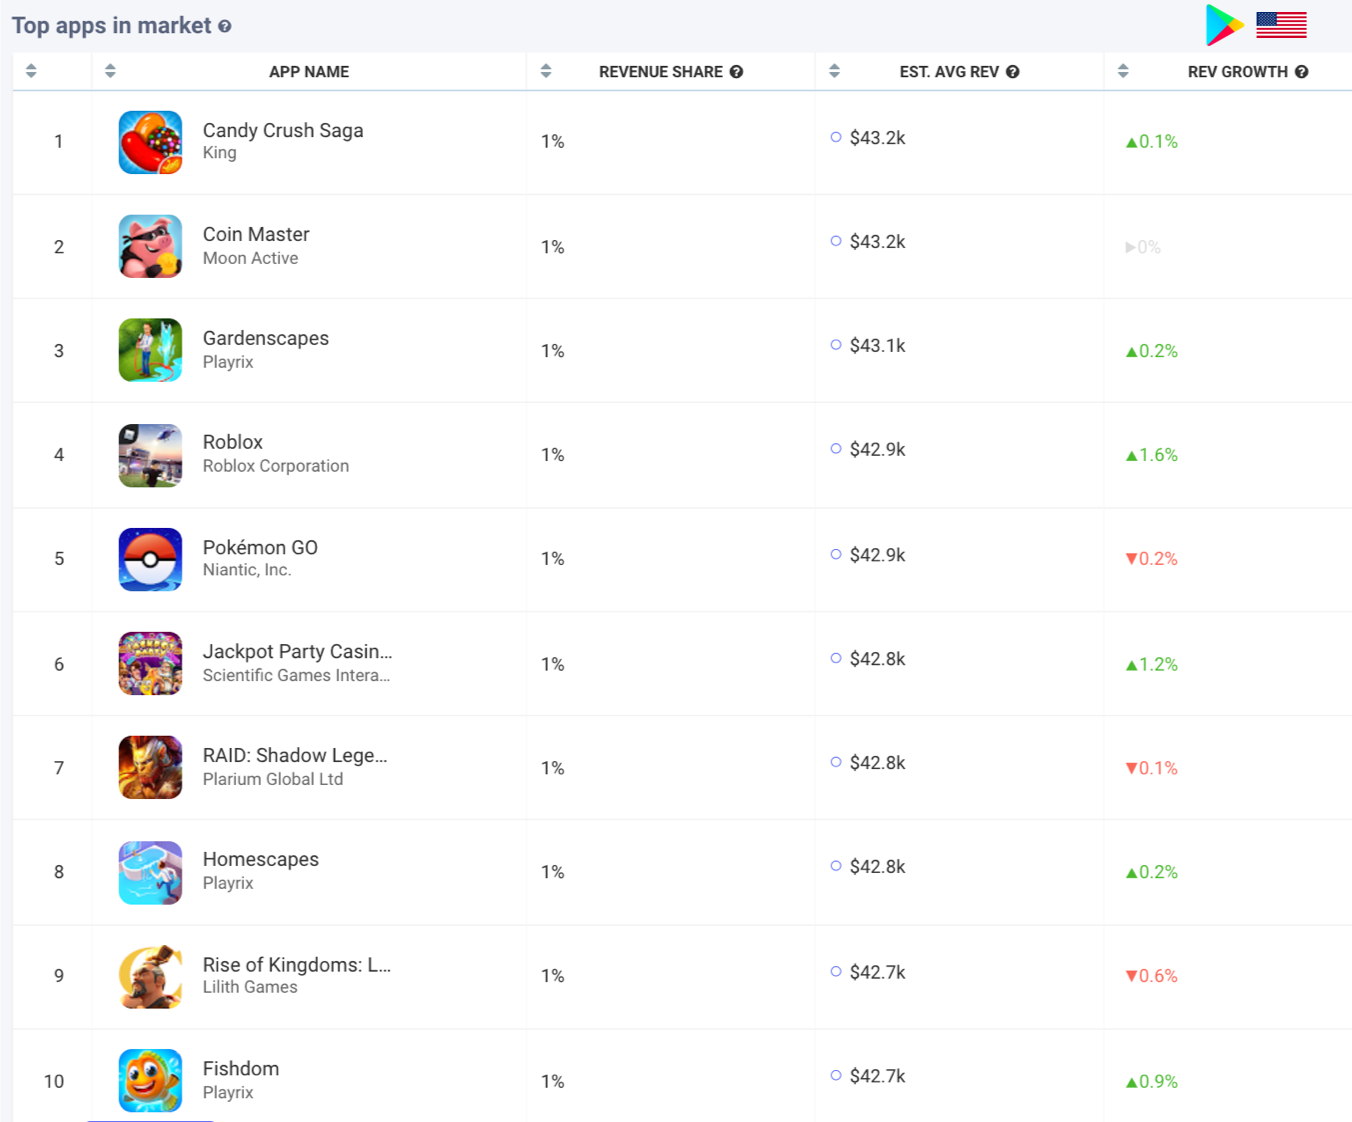 AppTweak Market Intelligence: Top Revenue Games in the US Google Play Store